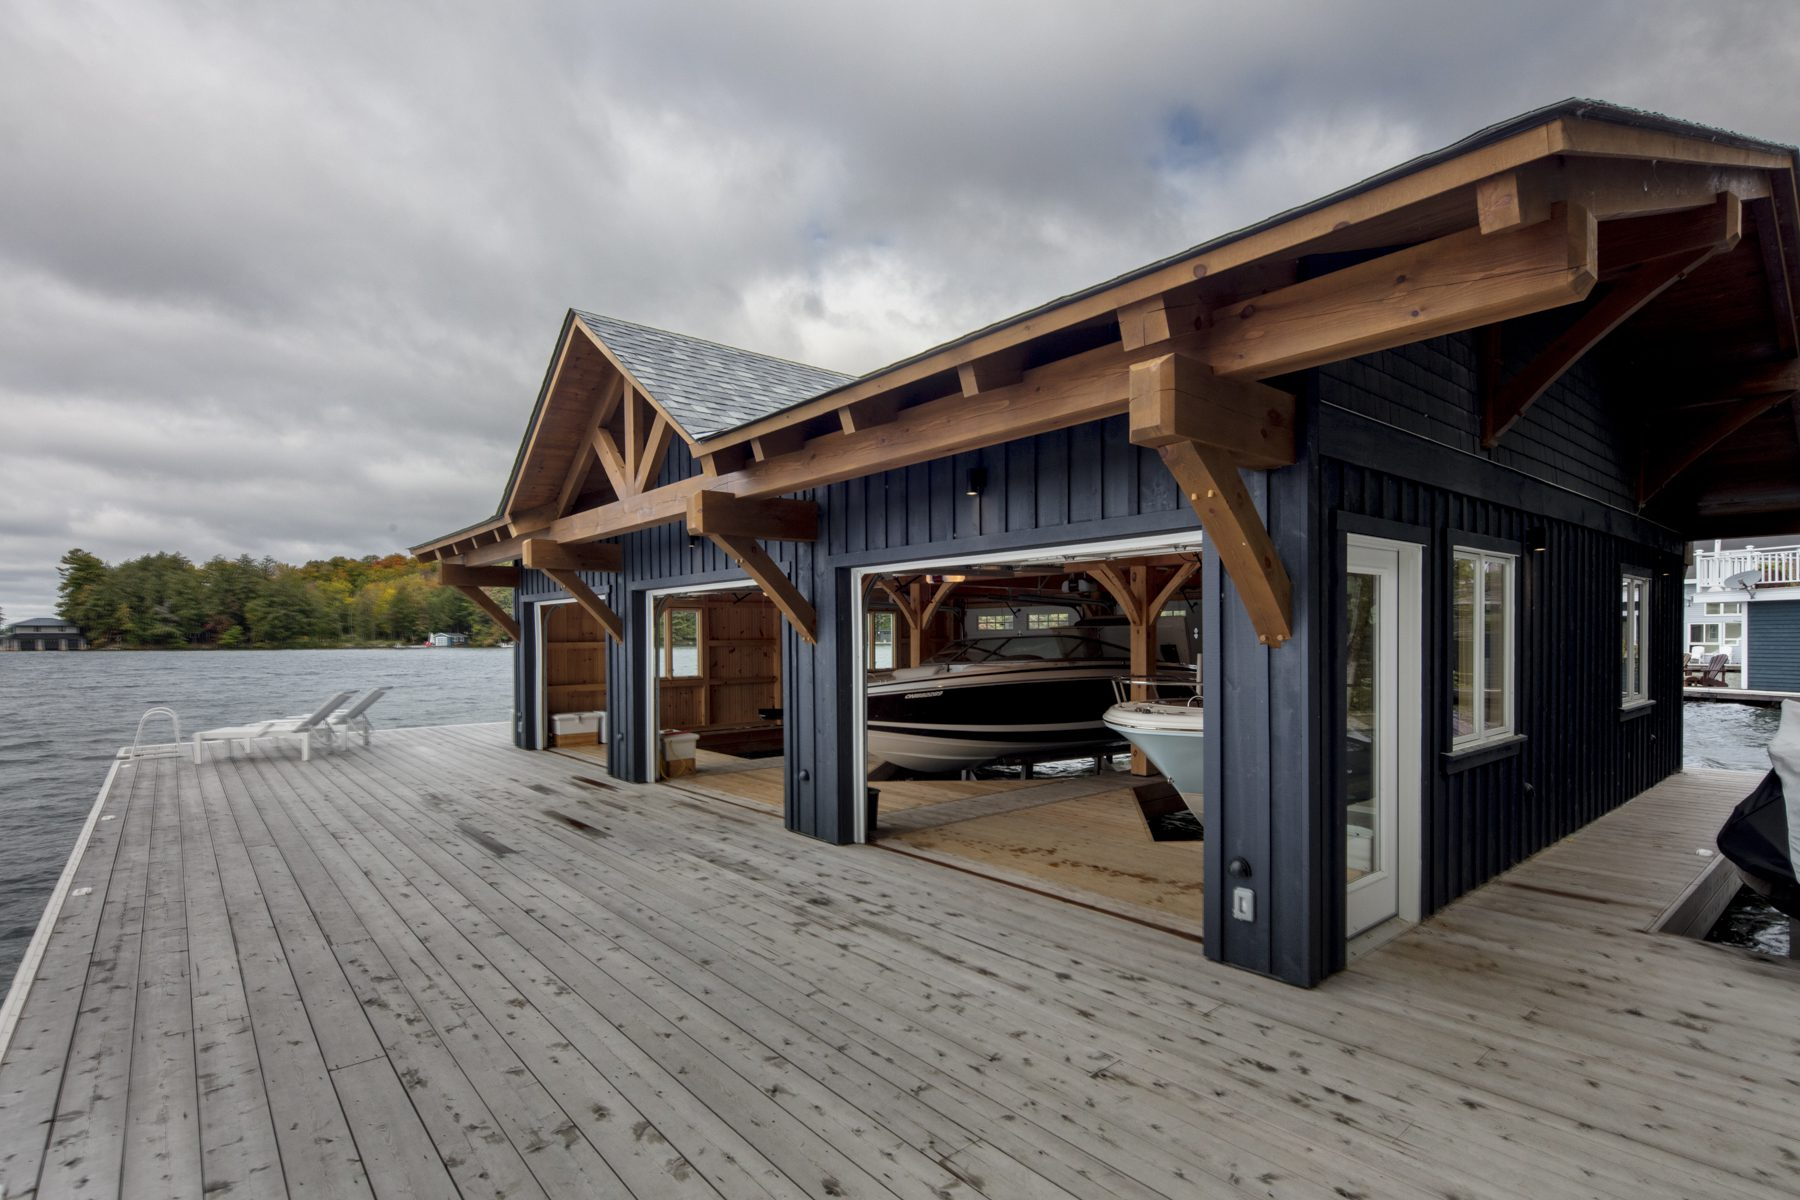 Normerica Timber Frame, Exterior, Cottage, Boathouse, Dock